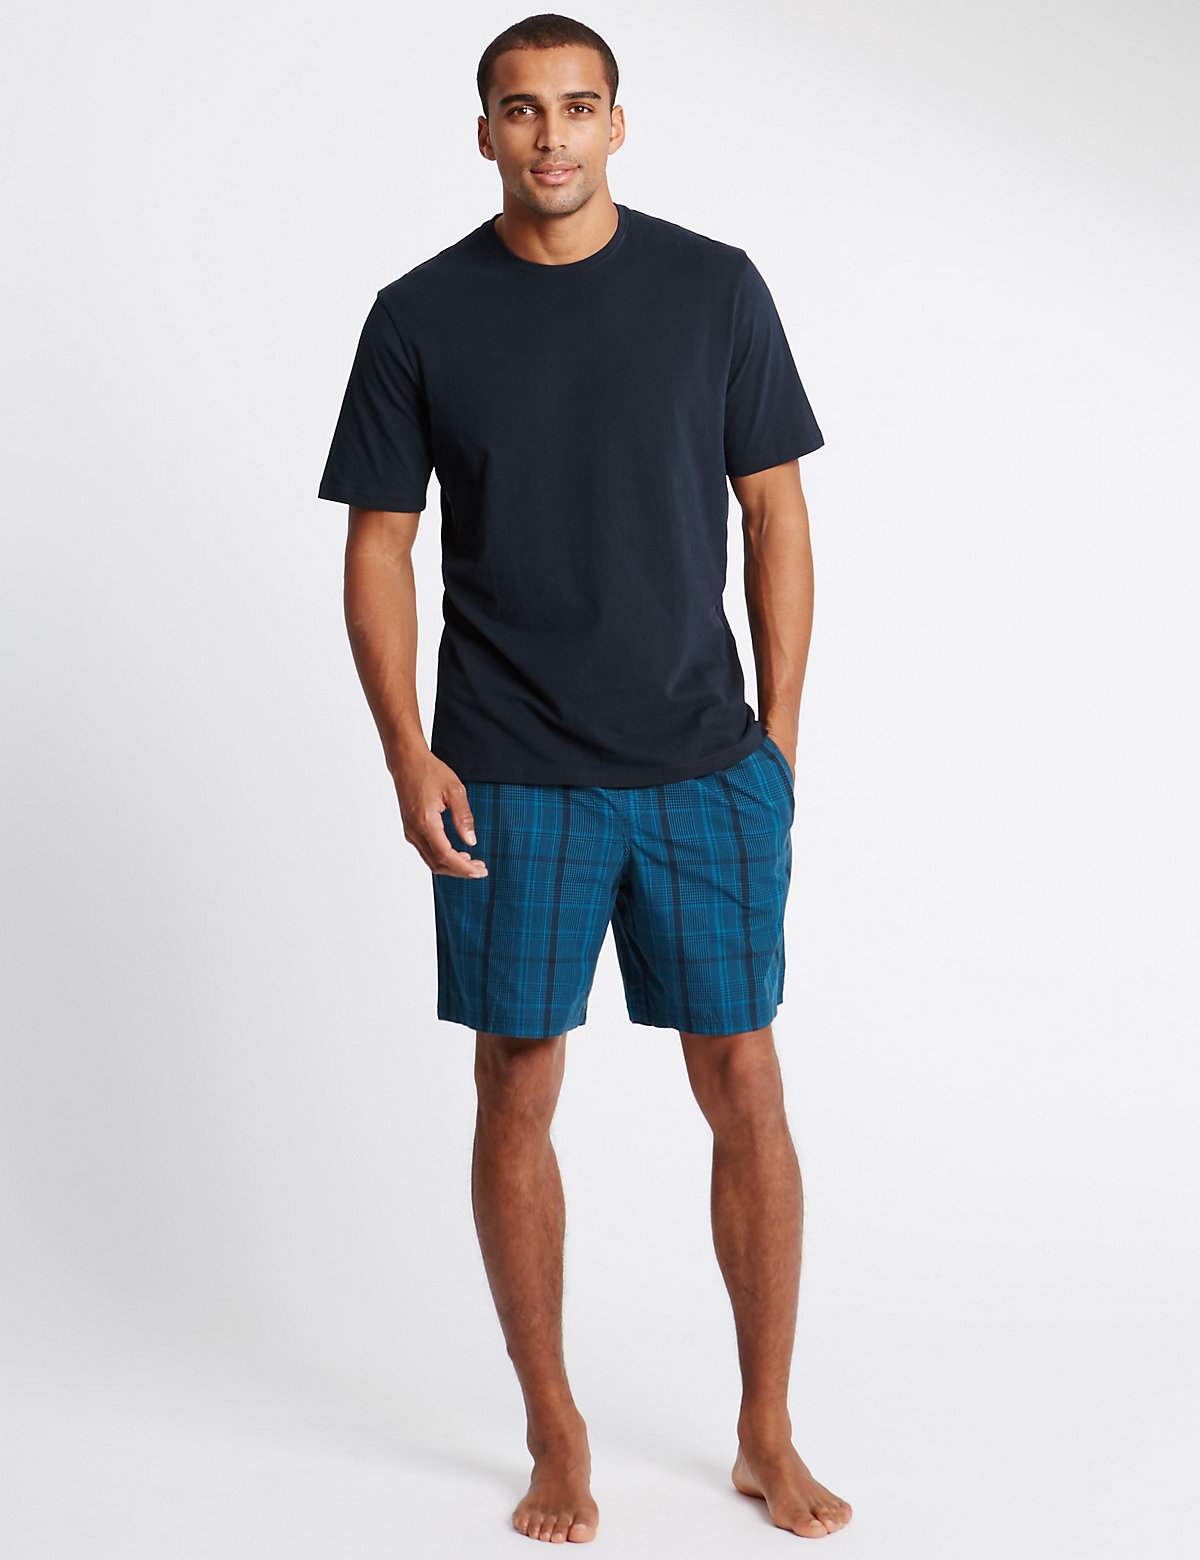 Image of M&S Collection Pure Cotton Teal Checked T-Shirt & Shorts Set